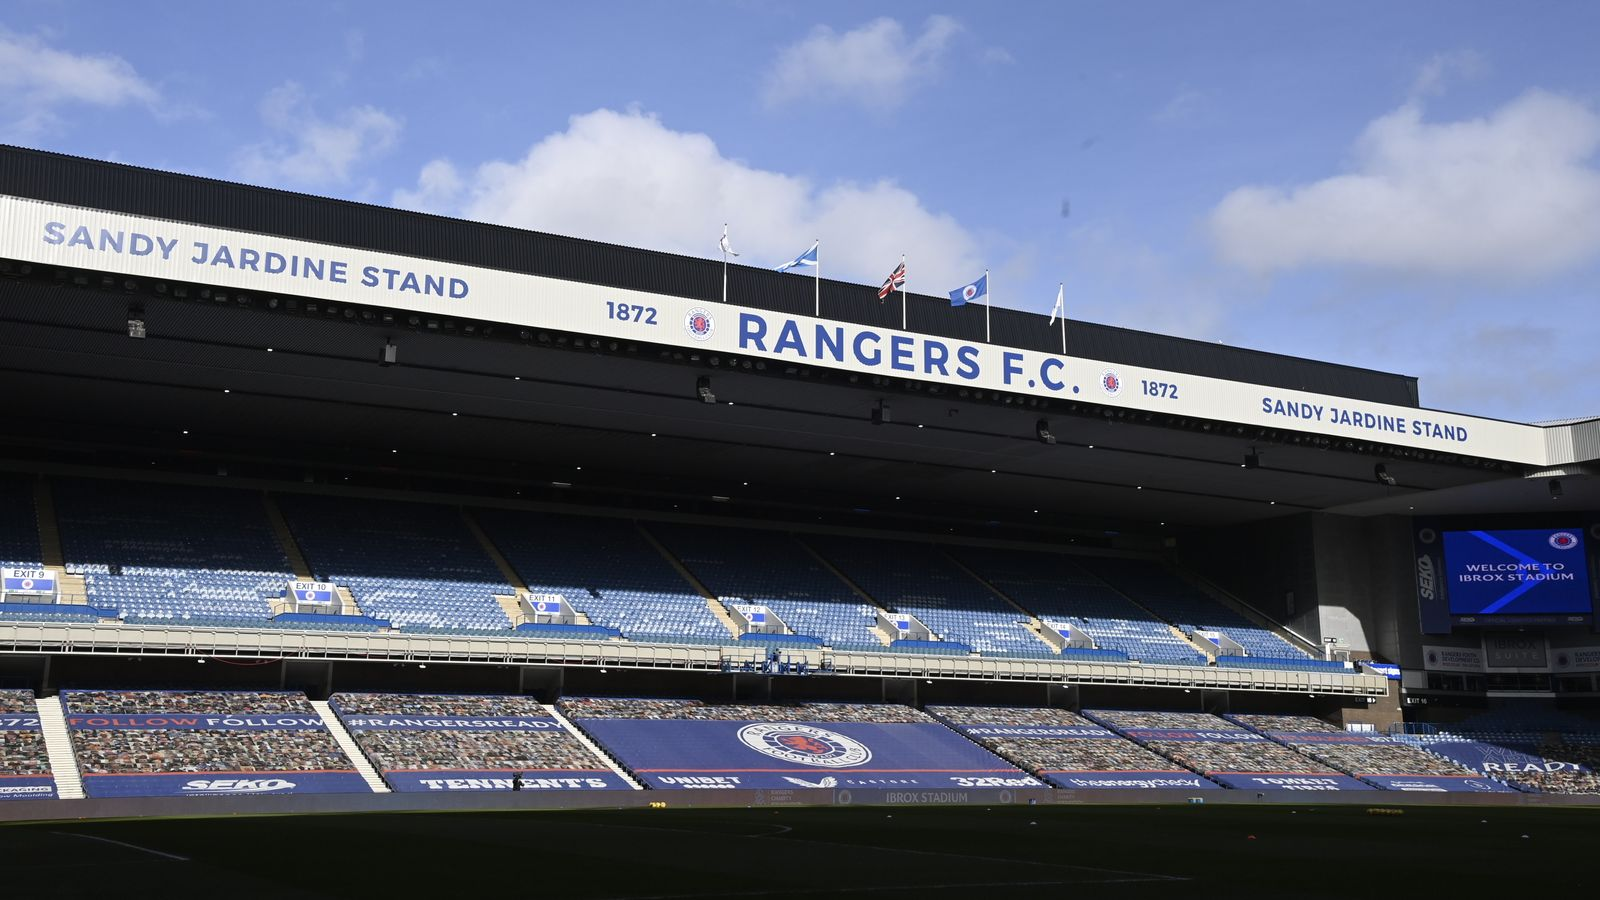 Old Firm to have full capacity crowds from next week; Rangers to play in full Ibrox for Malmo Champions League second leg